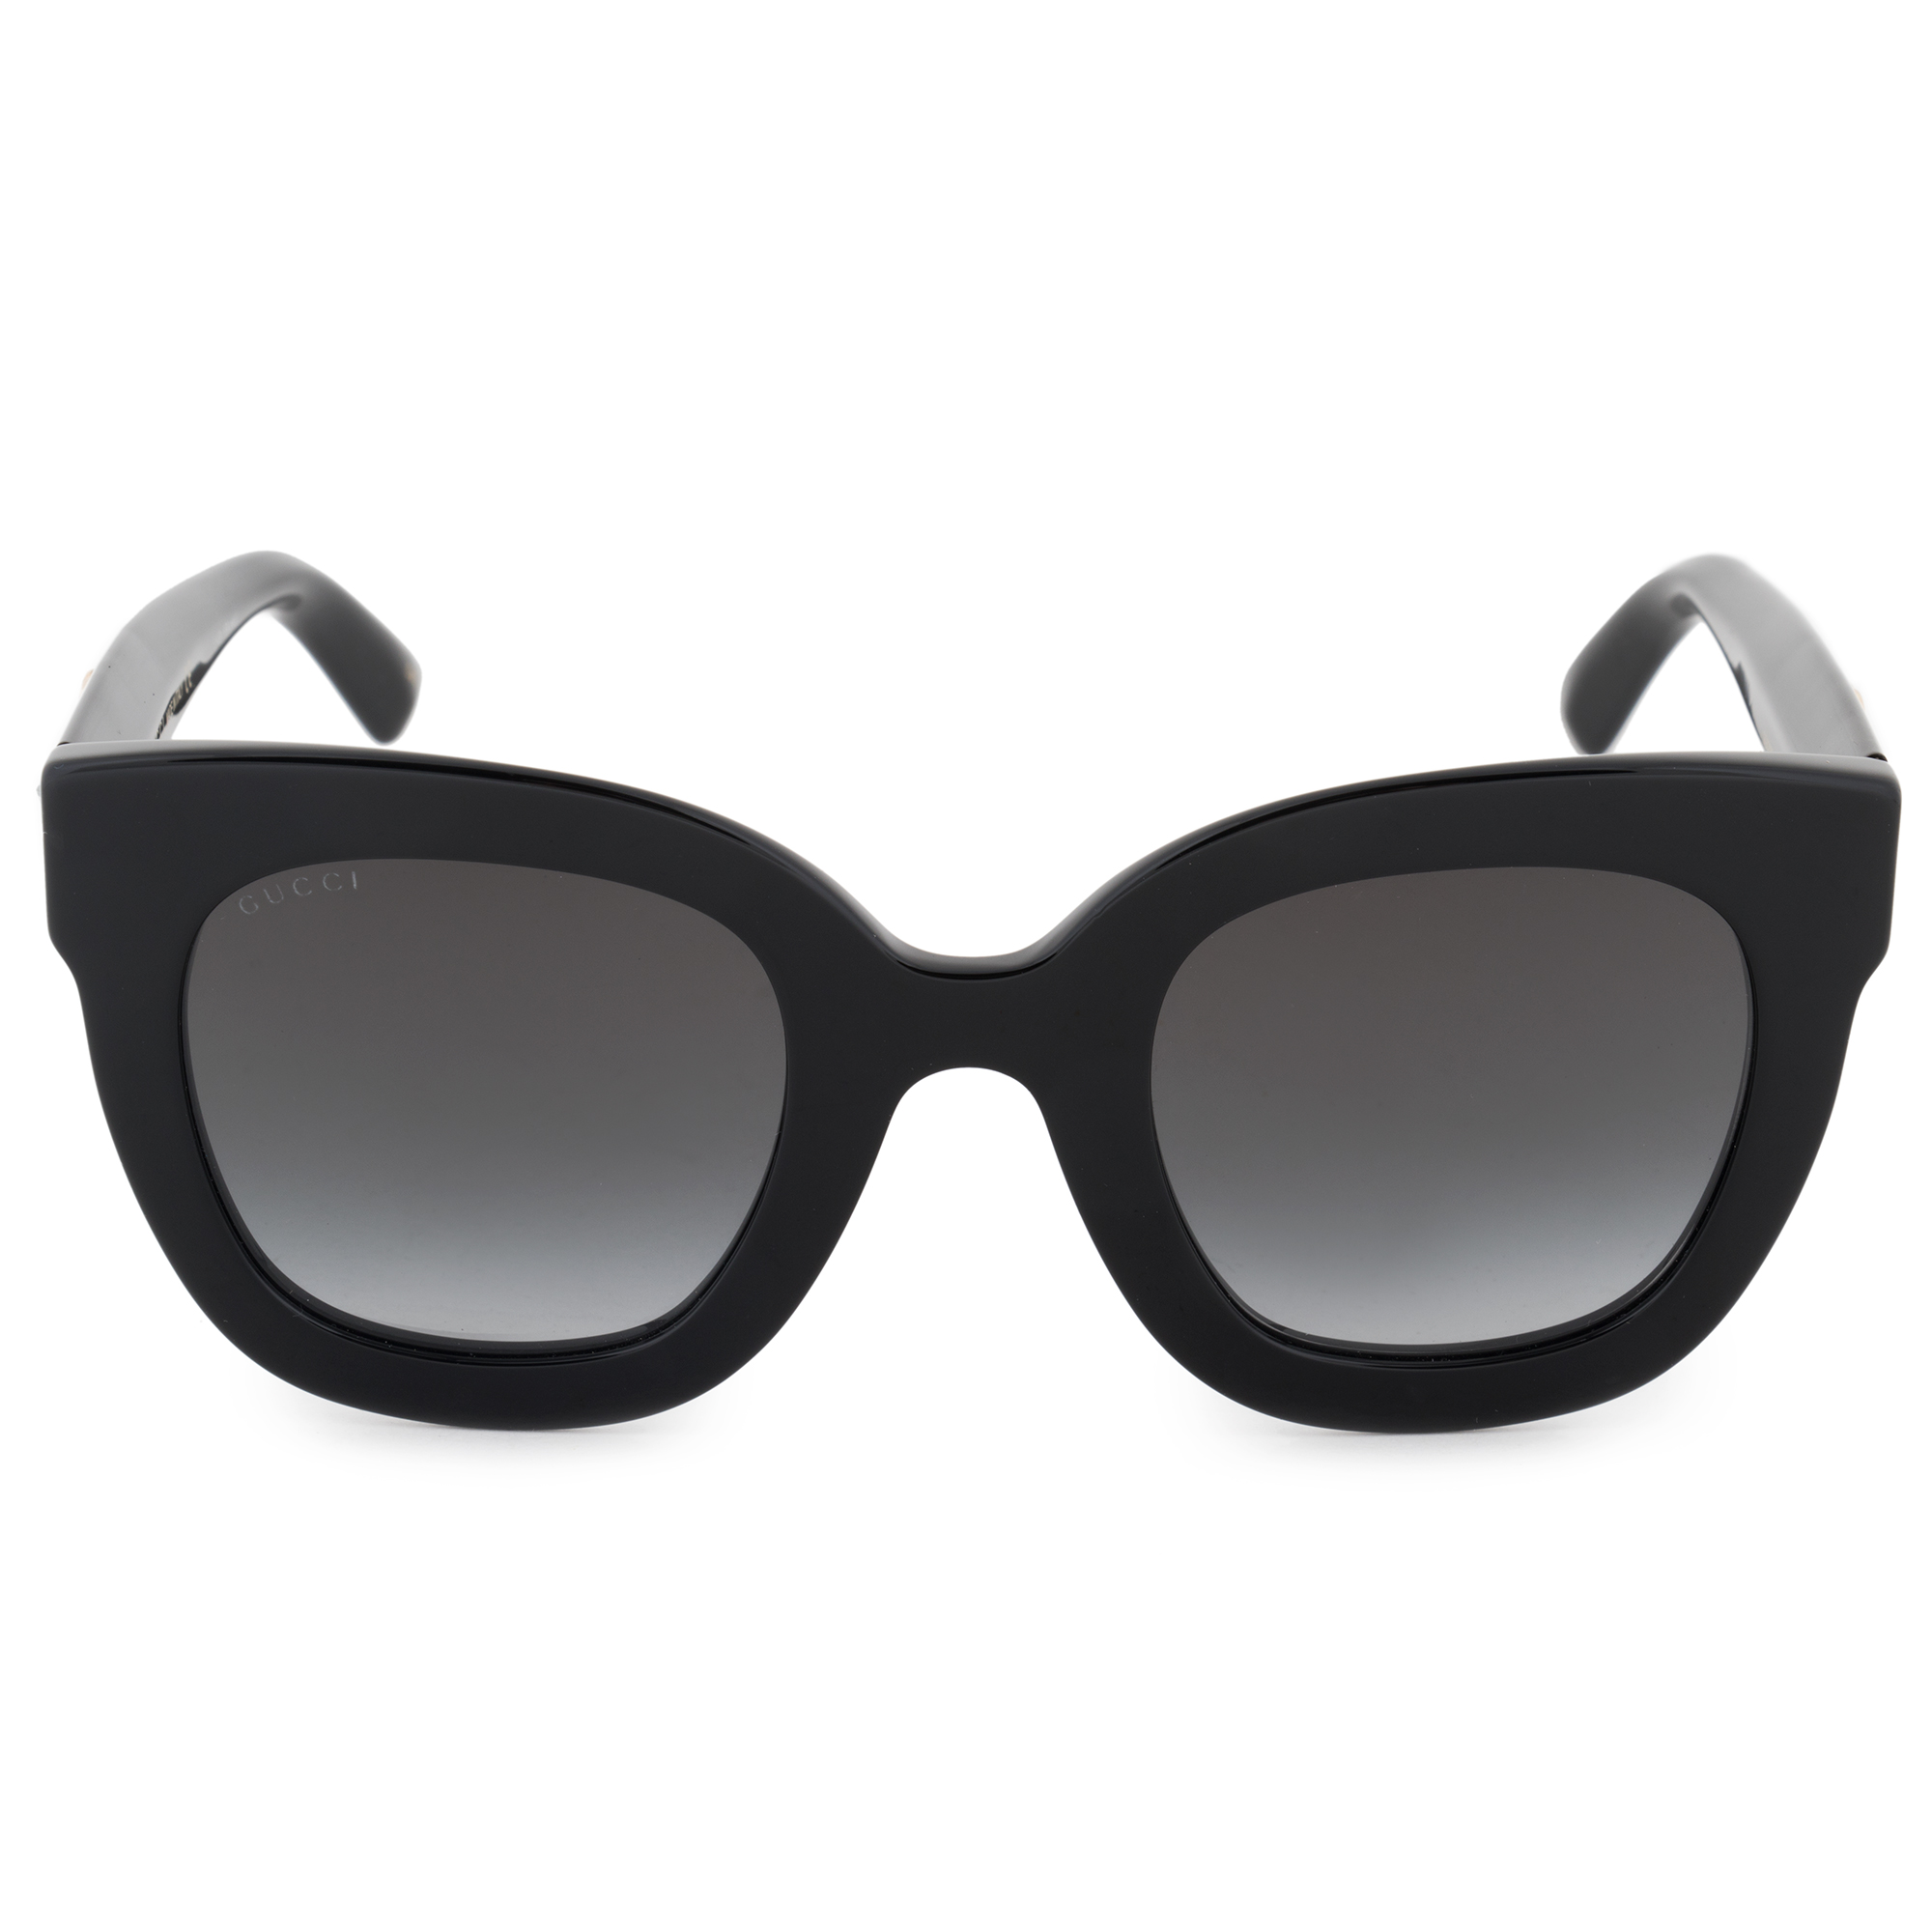 666a54bbe16a3 Gucci Cat Eye Sunglasses GG0208S 001 49 889652091266